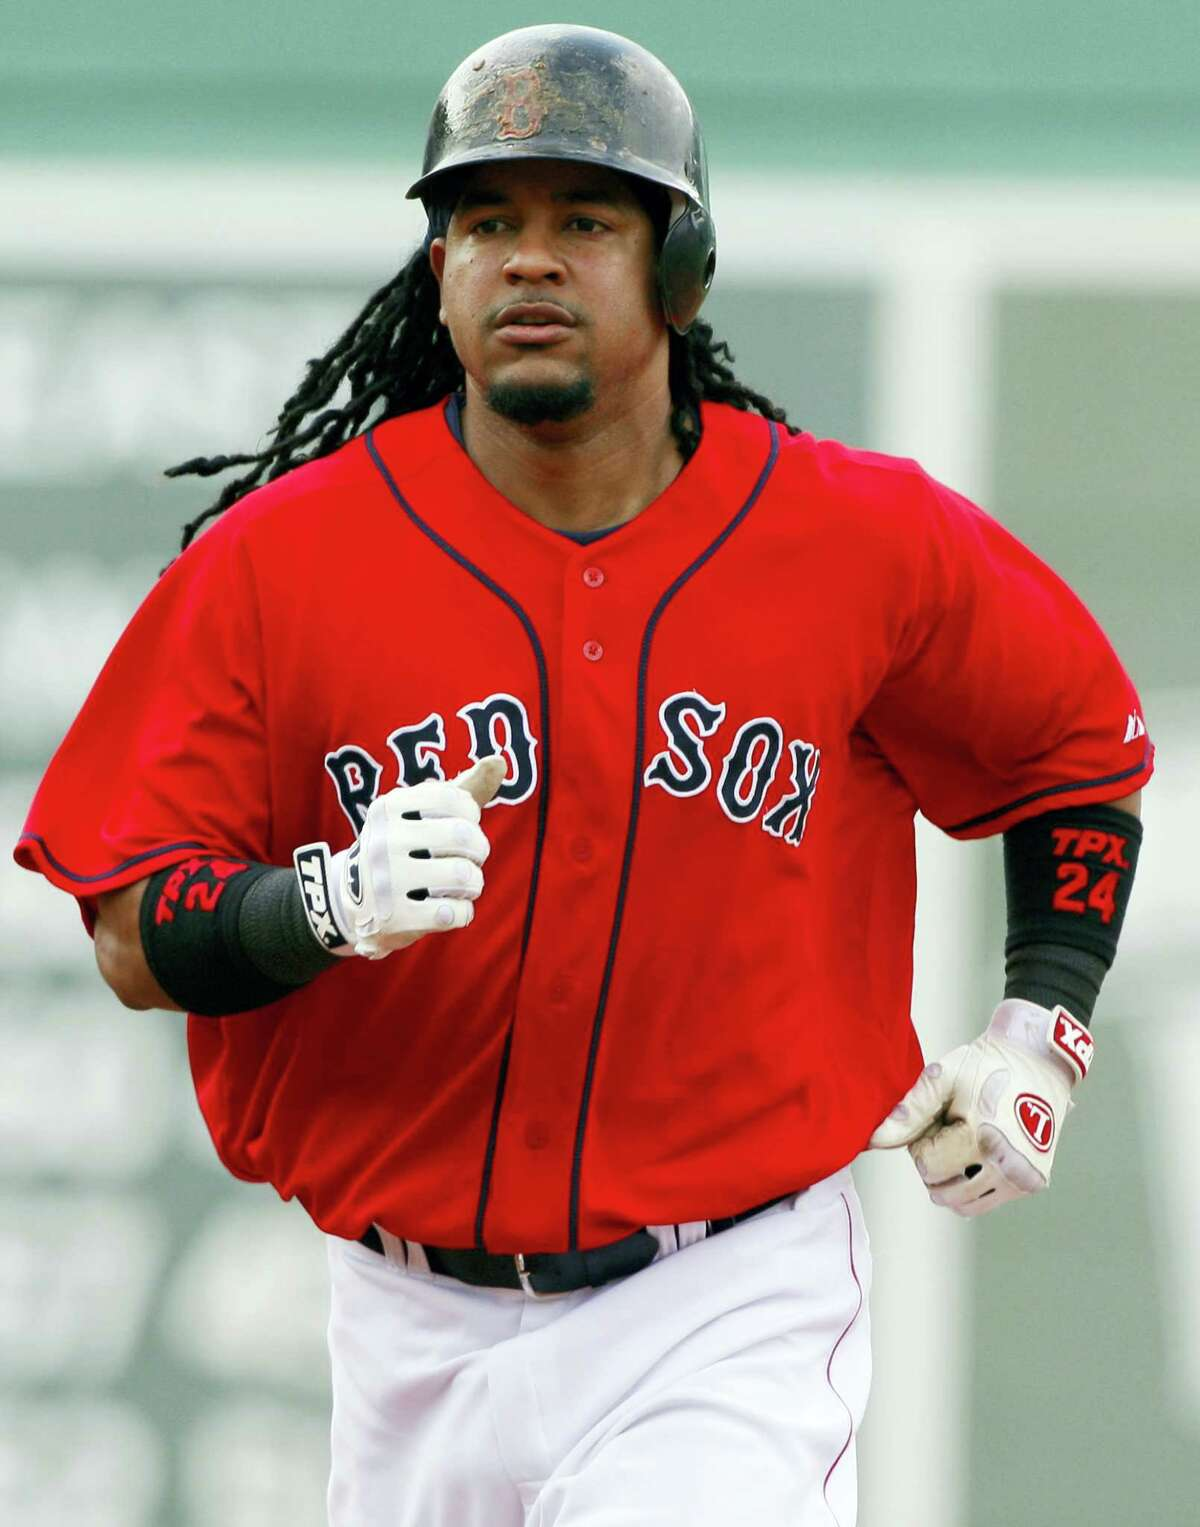 Manny Ramirez is on baseball's Hall of Fame ballot for the first time this year.